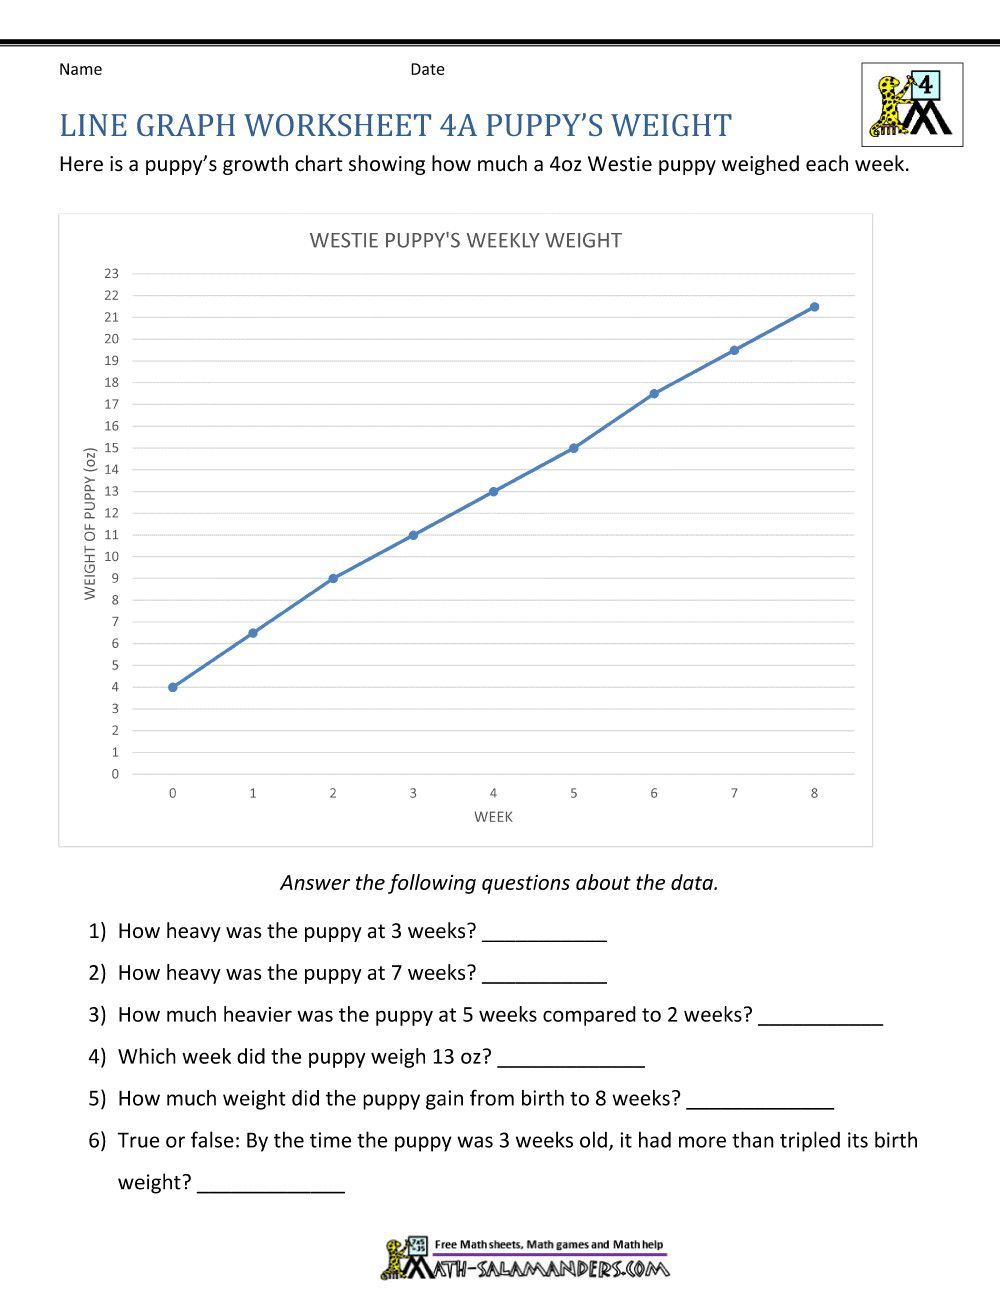 Line Graph Worksheets 5th Grade in 2020 Line graph